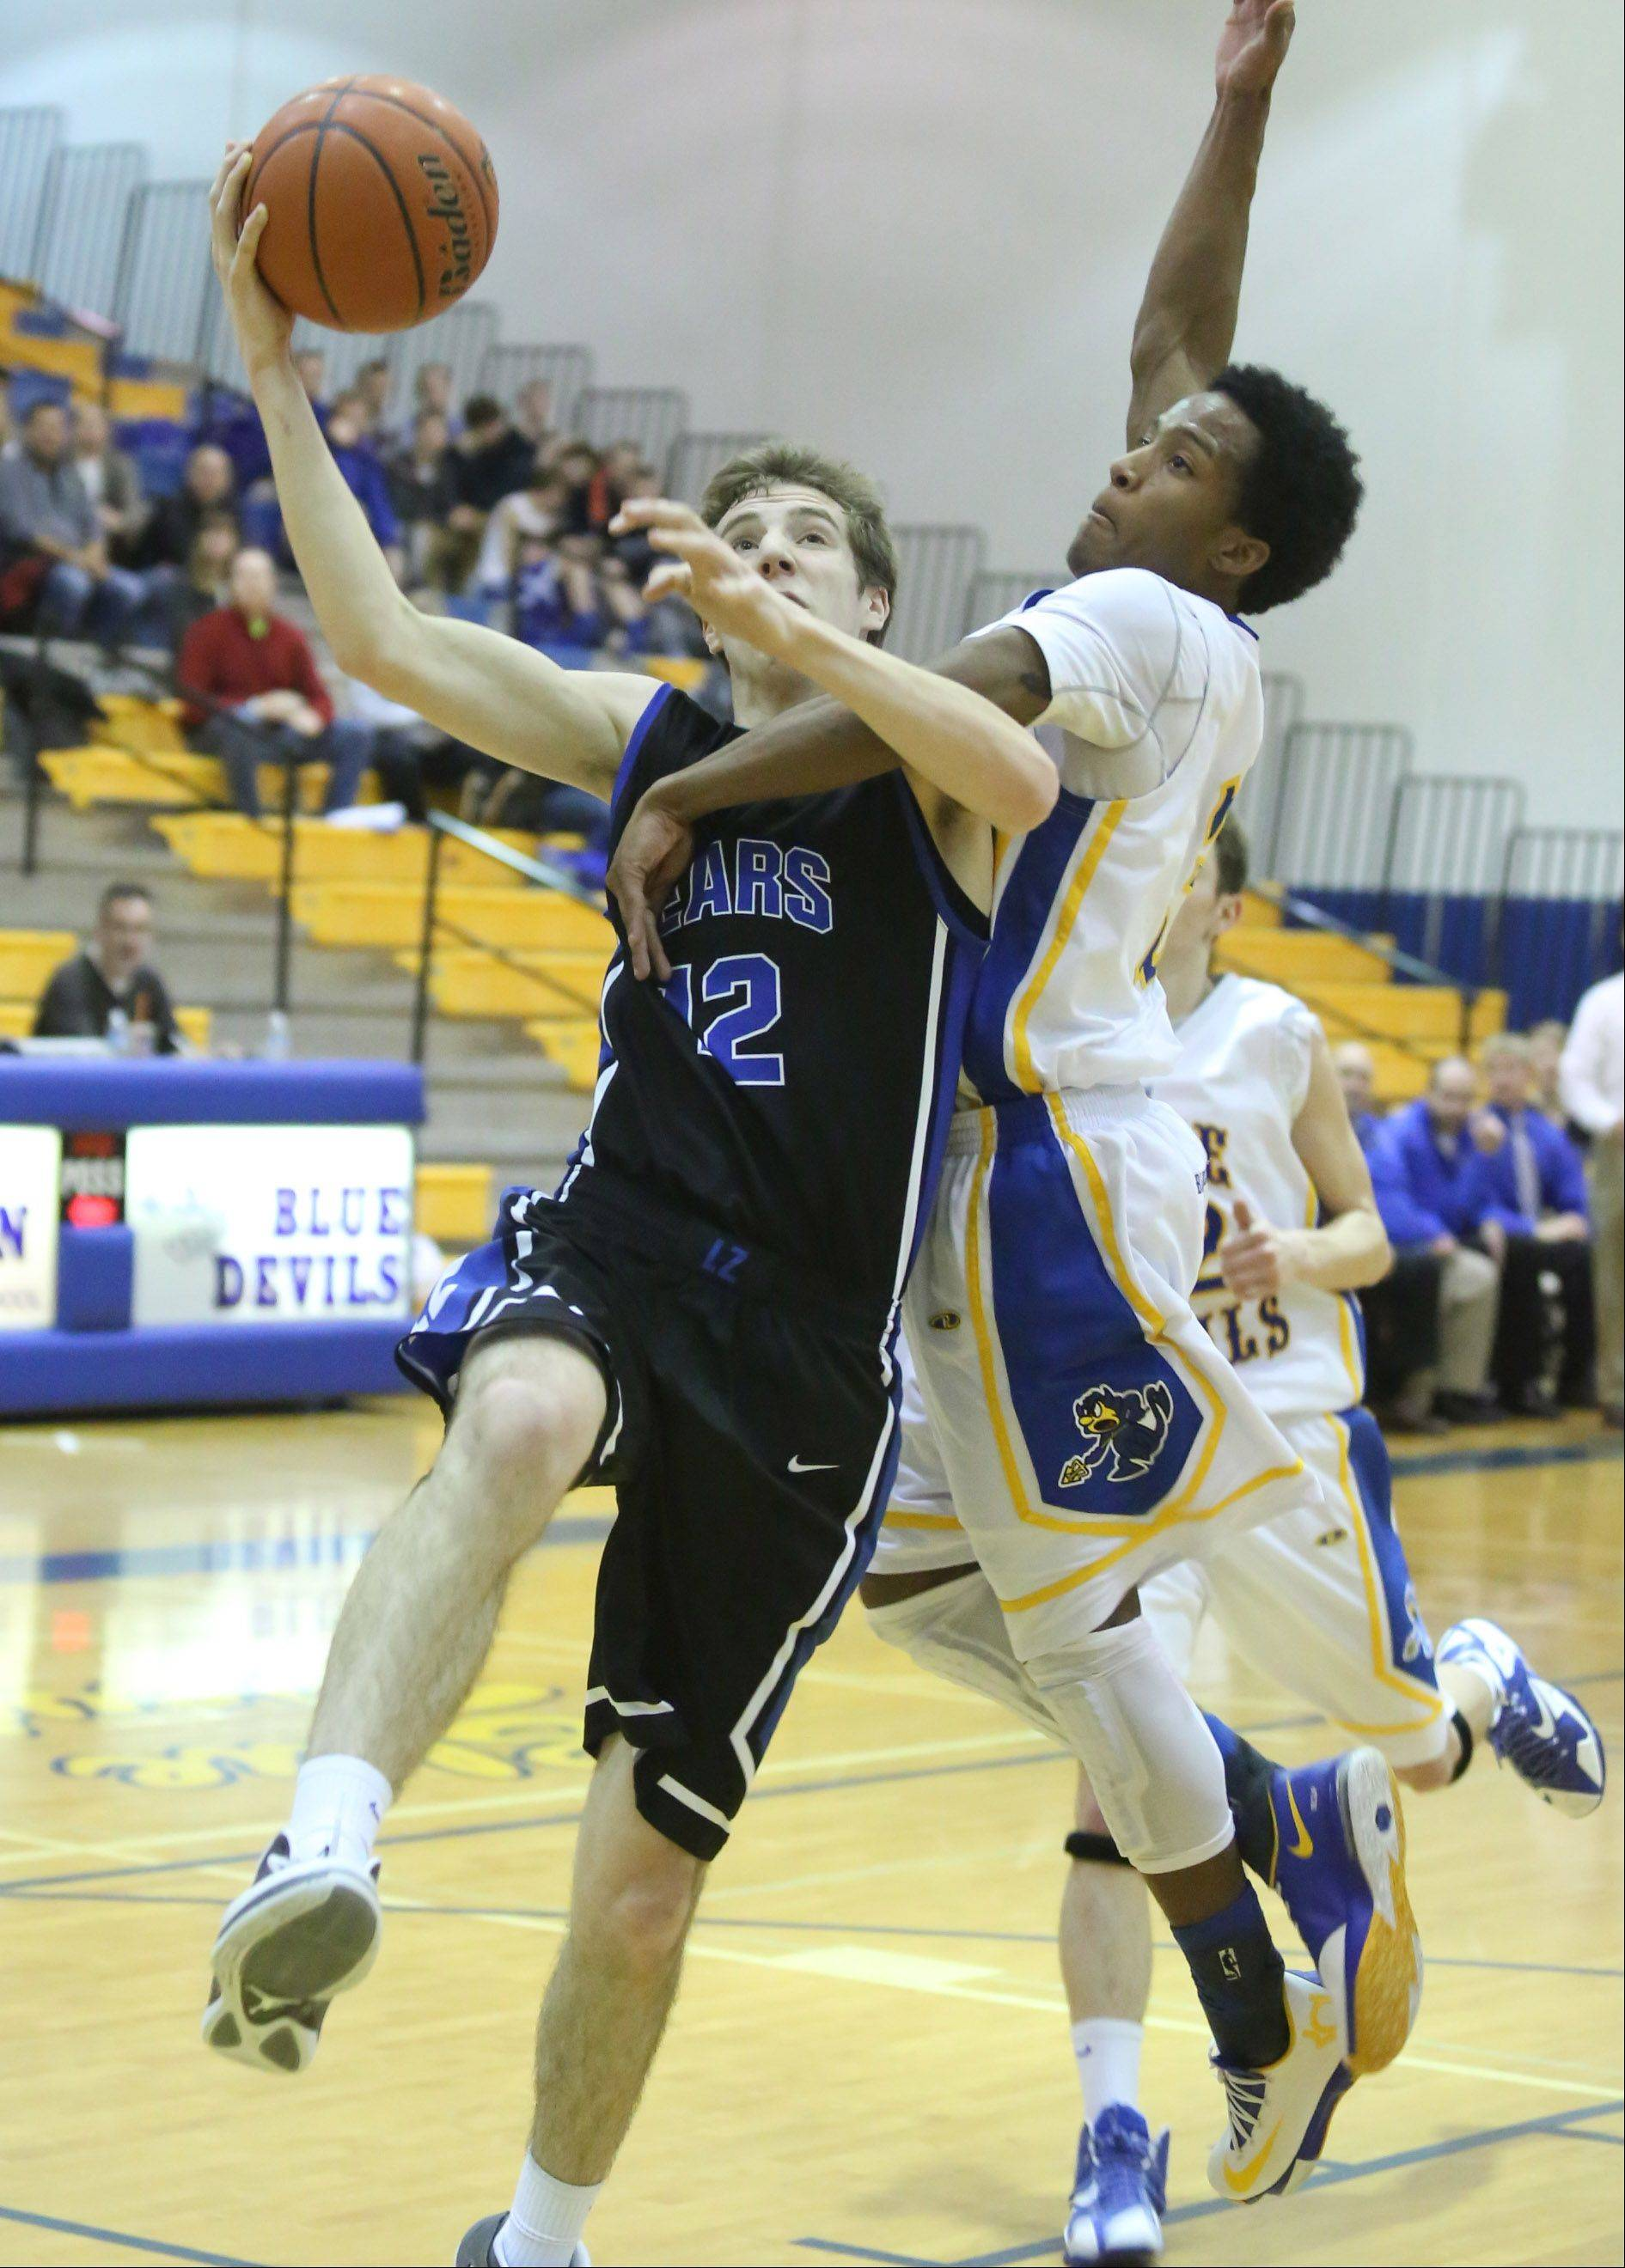 Warren defender Eric Gillespie is called for a shooting foul against Lake Zurich forward Corey Helgeson on a breakaway to the basket.